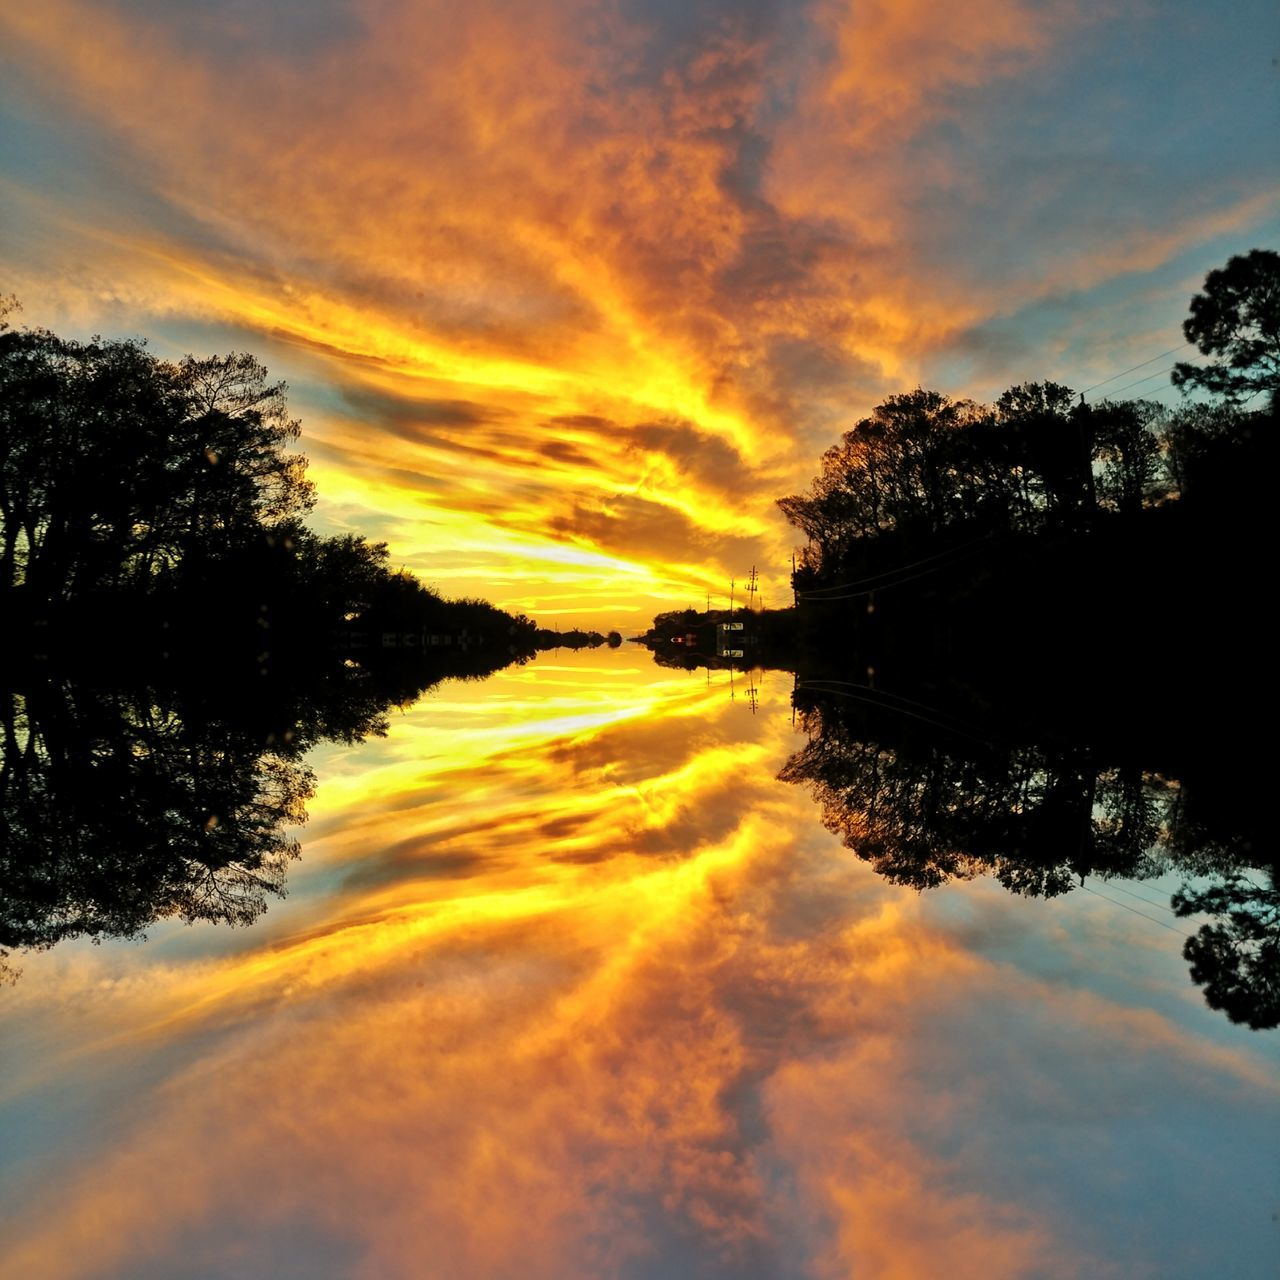 reflection, sky, sunset, cloud - sky, tree, water, orange color, beauty in nature, scenics, nature, silhouette, waterfront, tranquil scene, dramatic sky, outdoors, tranquility, no people, lake